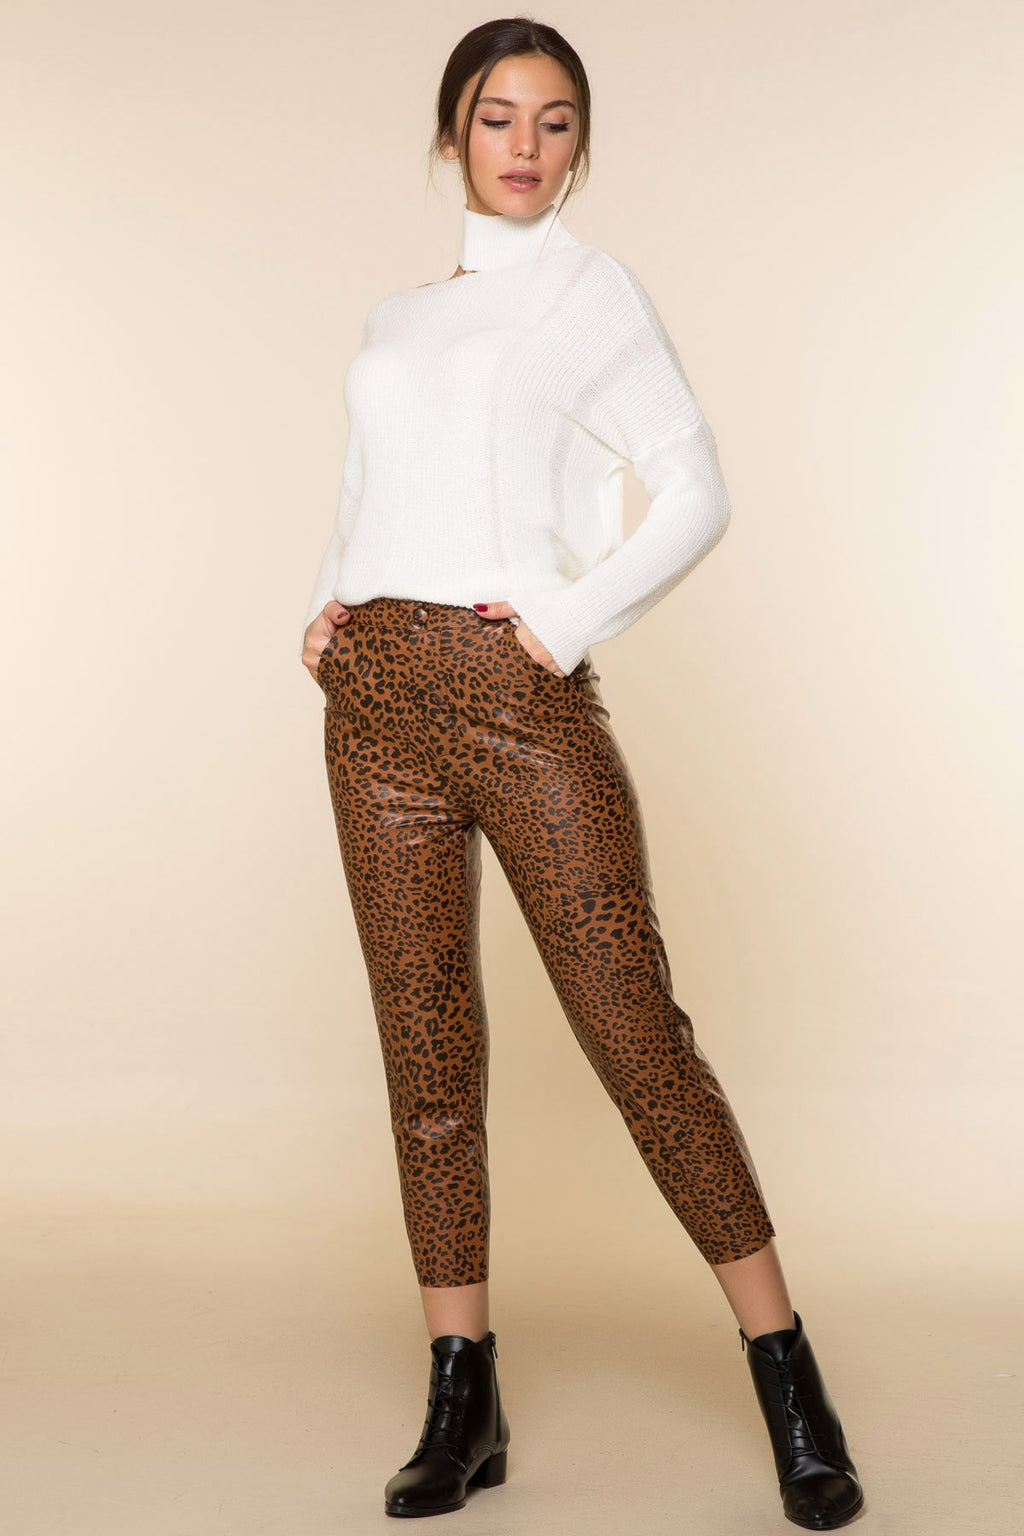 Leopard Patterned Leather Pants